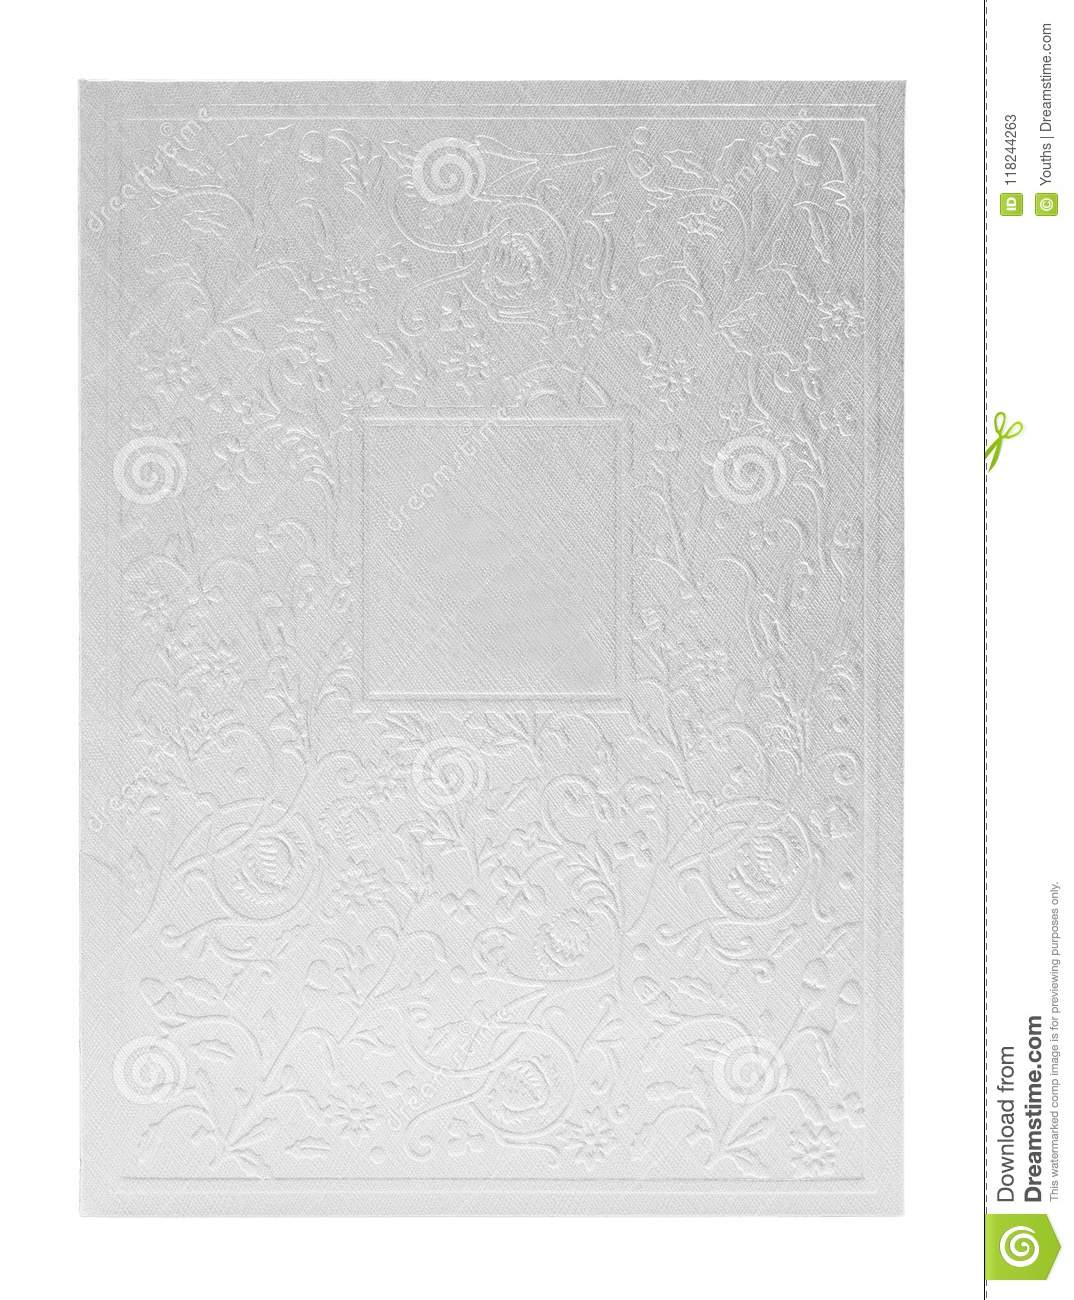 Wedding invitation card background texture isolated stock download wedding invitation card background texture isolated stock illustration illustration of classic blank stopboris Image collections